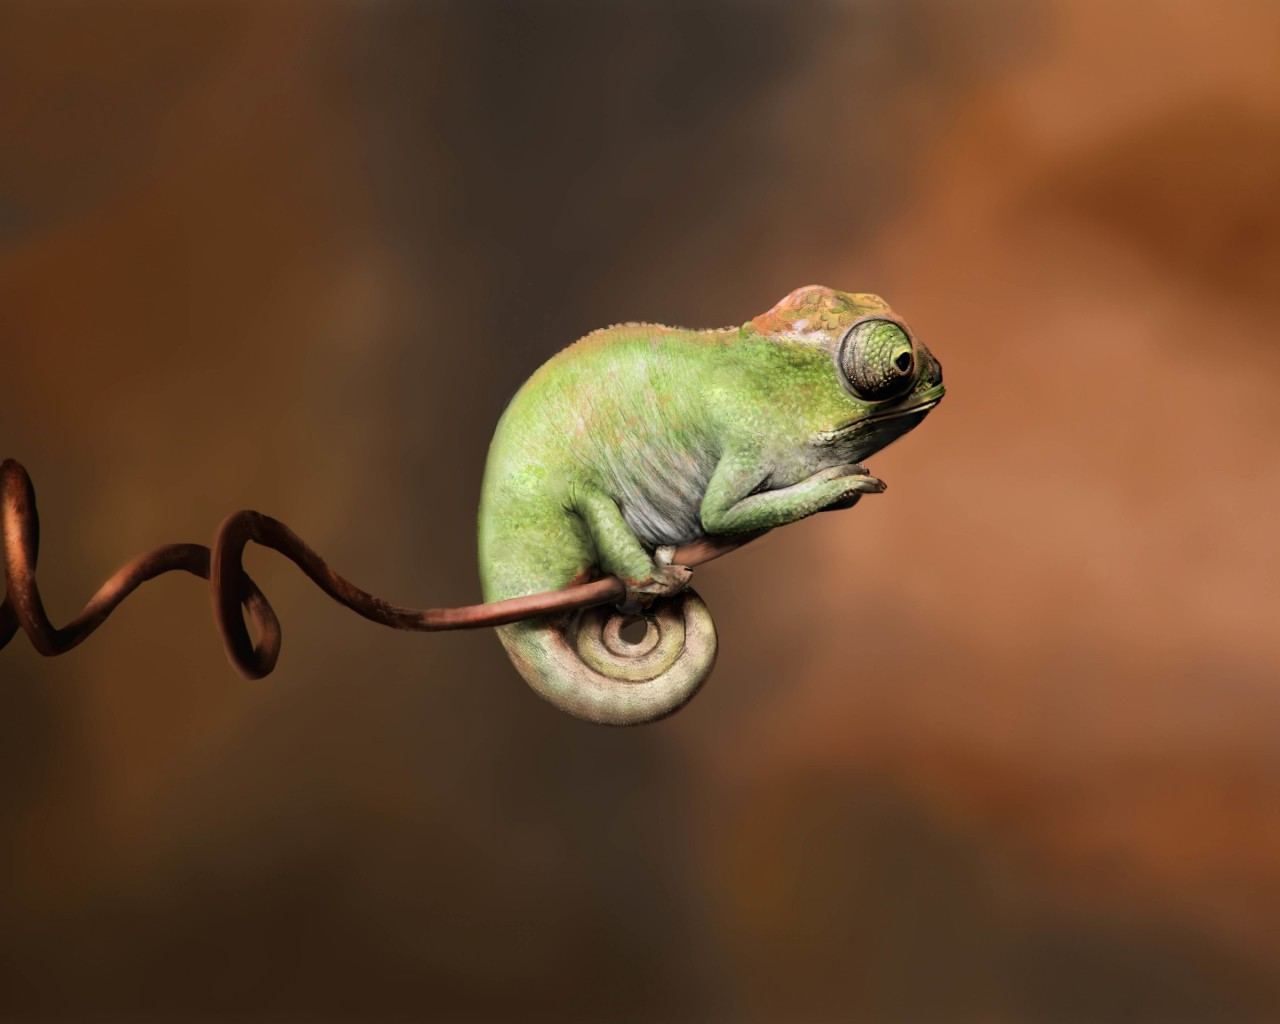 Baby Chameleon Perching On a Twisted Branch Wallpaper for Desktop 1280x1024